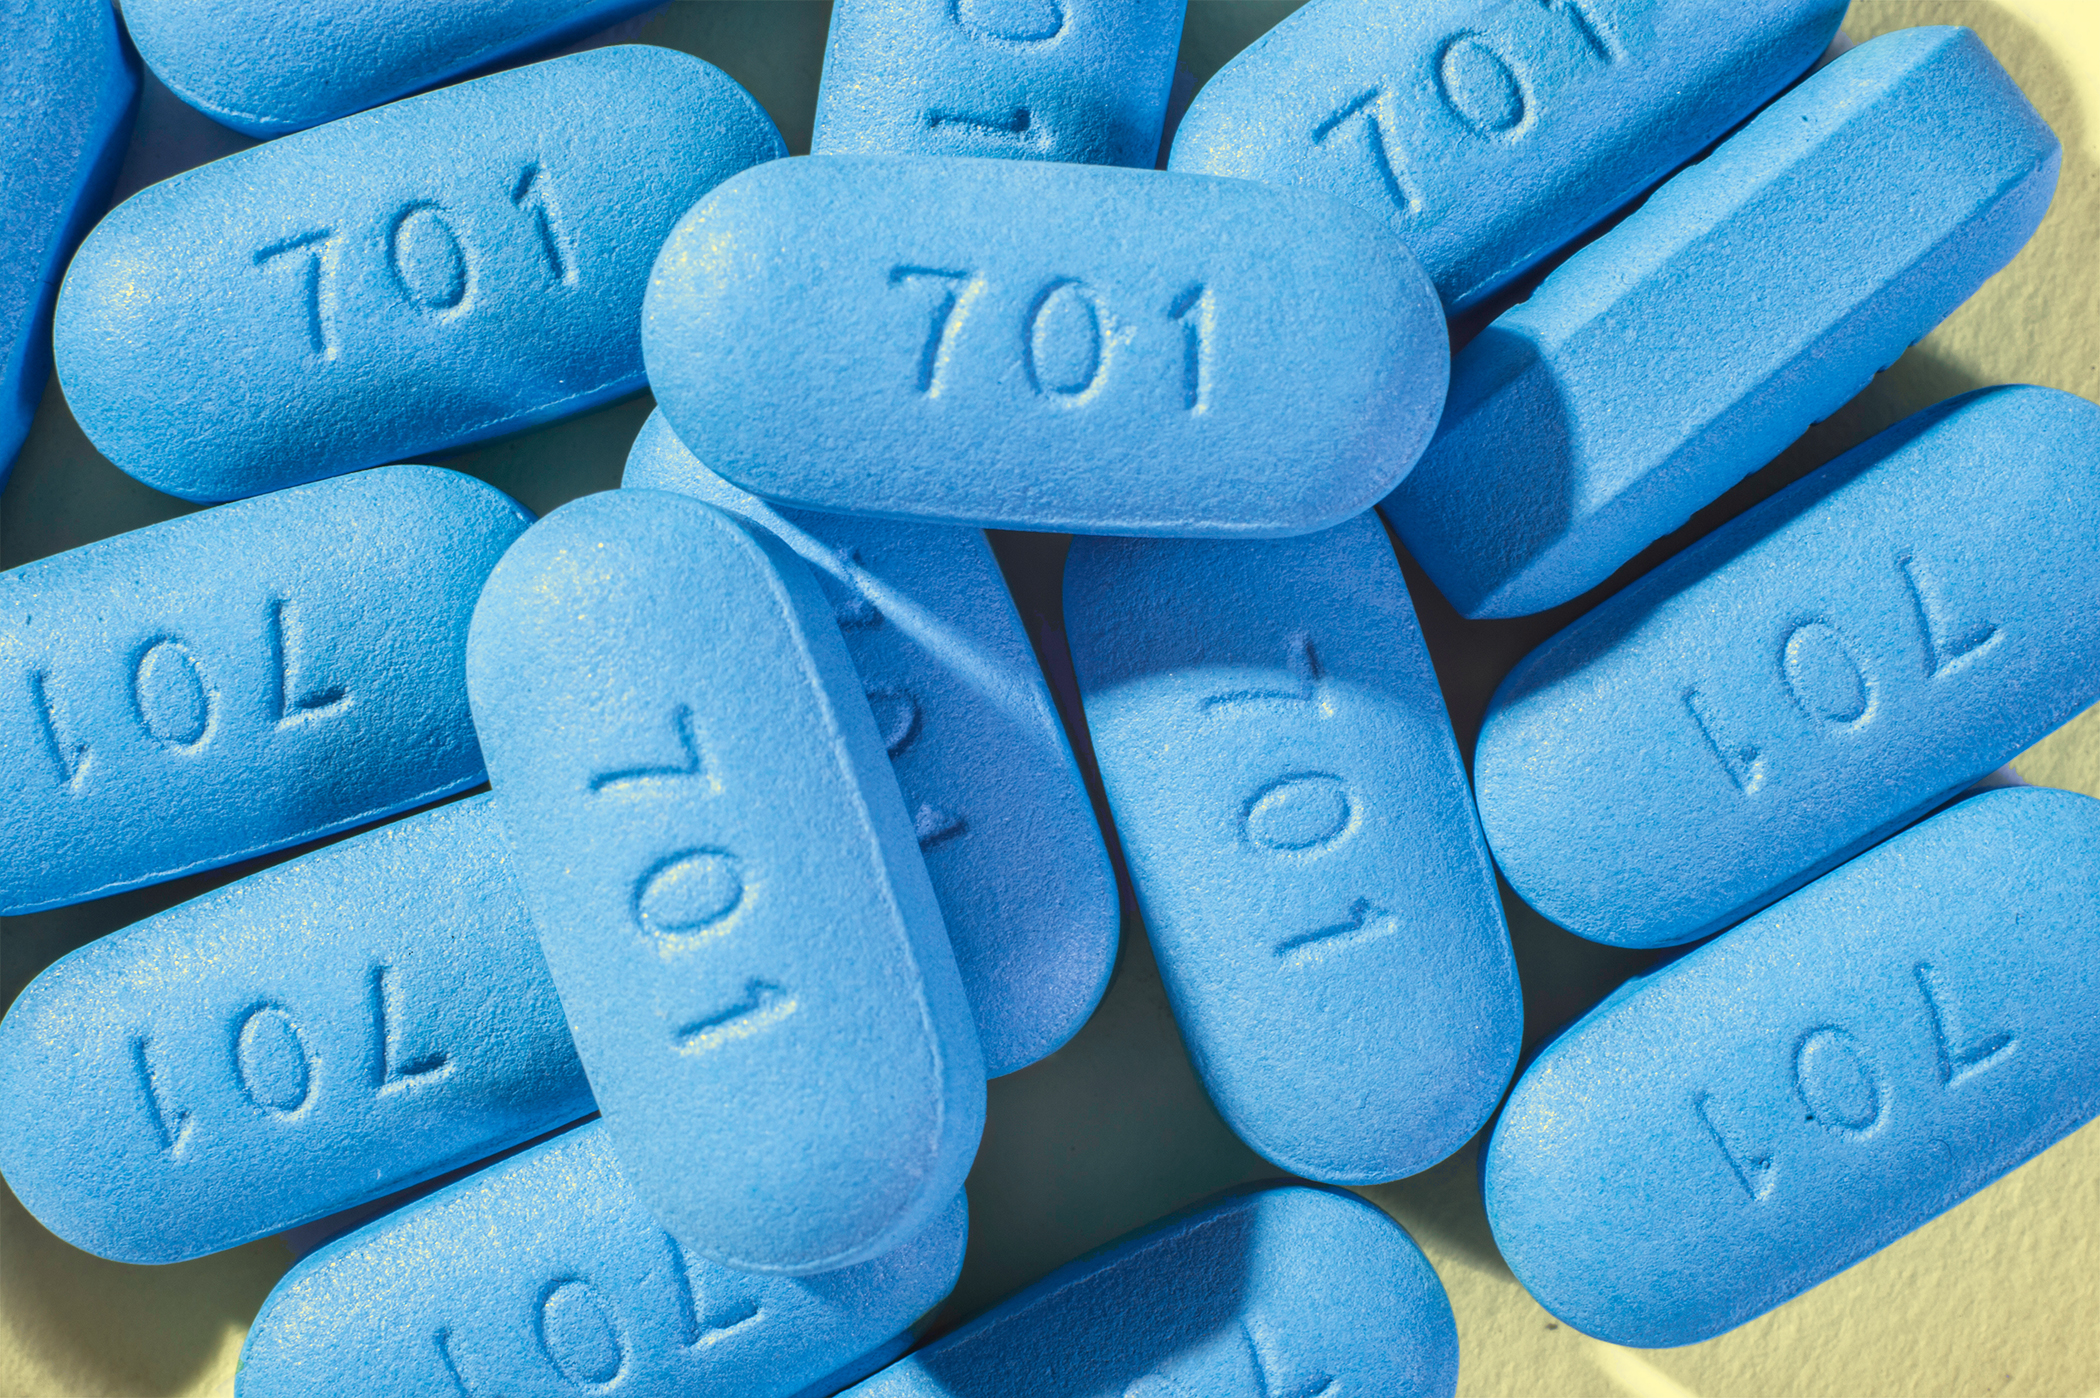 This HIV Medication is Making a Difference. Republicans Are Making it Unaffordable.